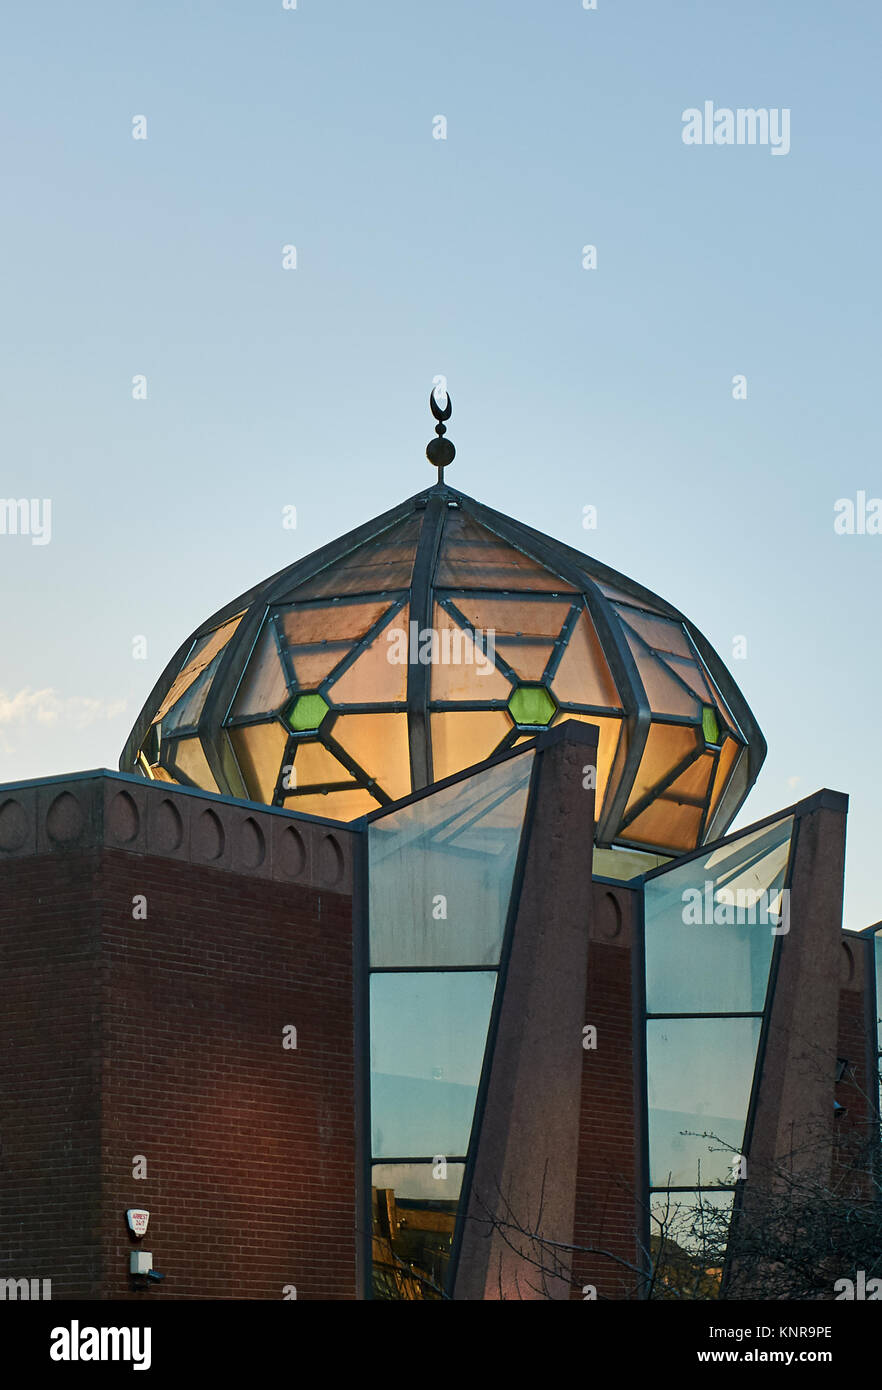 Glasgow Central Mosque in the Gorbals district of central Glasgow. The organization, 'Muslims in Brita - Stock Image